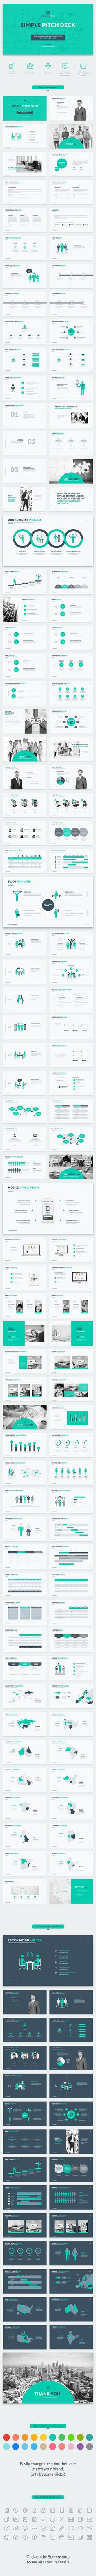 Simple Pitch Deck Keynote Template by JafarDesigns Only created for real world proven Presentation! A professional, clean and simple Pitch Deck Keynote Template to show your company Keynote Presentation, Pitch Presentation, Company Presentation, Business Presentation, Presentation Design, Presentation Templates, Web Design, Graphic Design Art, Layout Design